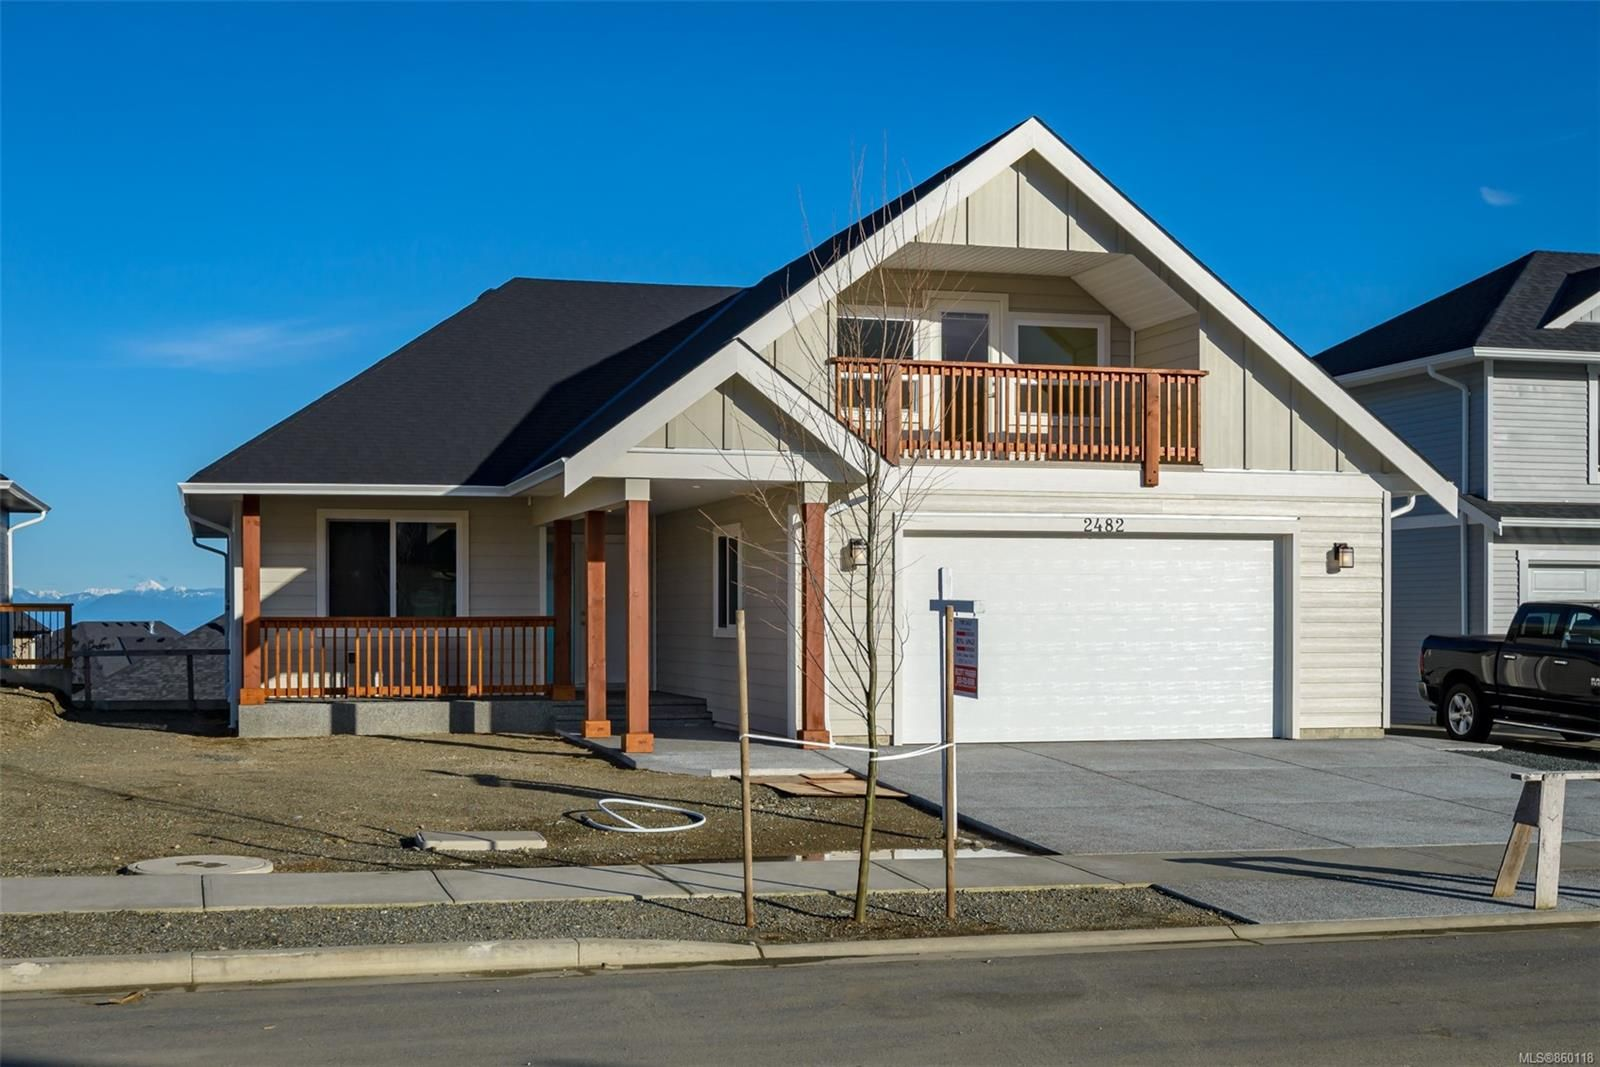 Main Photo: Lt17 2482 Kentmere Ave in : CV Cumberland House for sale (Comox Valley)  : MLS®# 860118